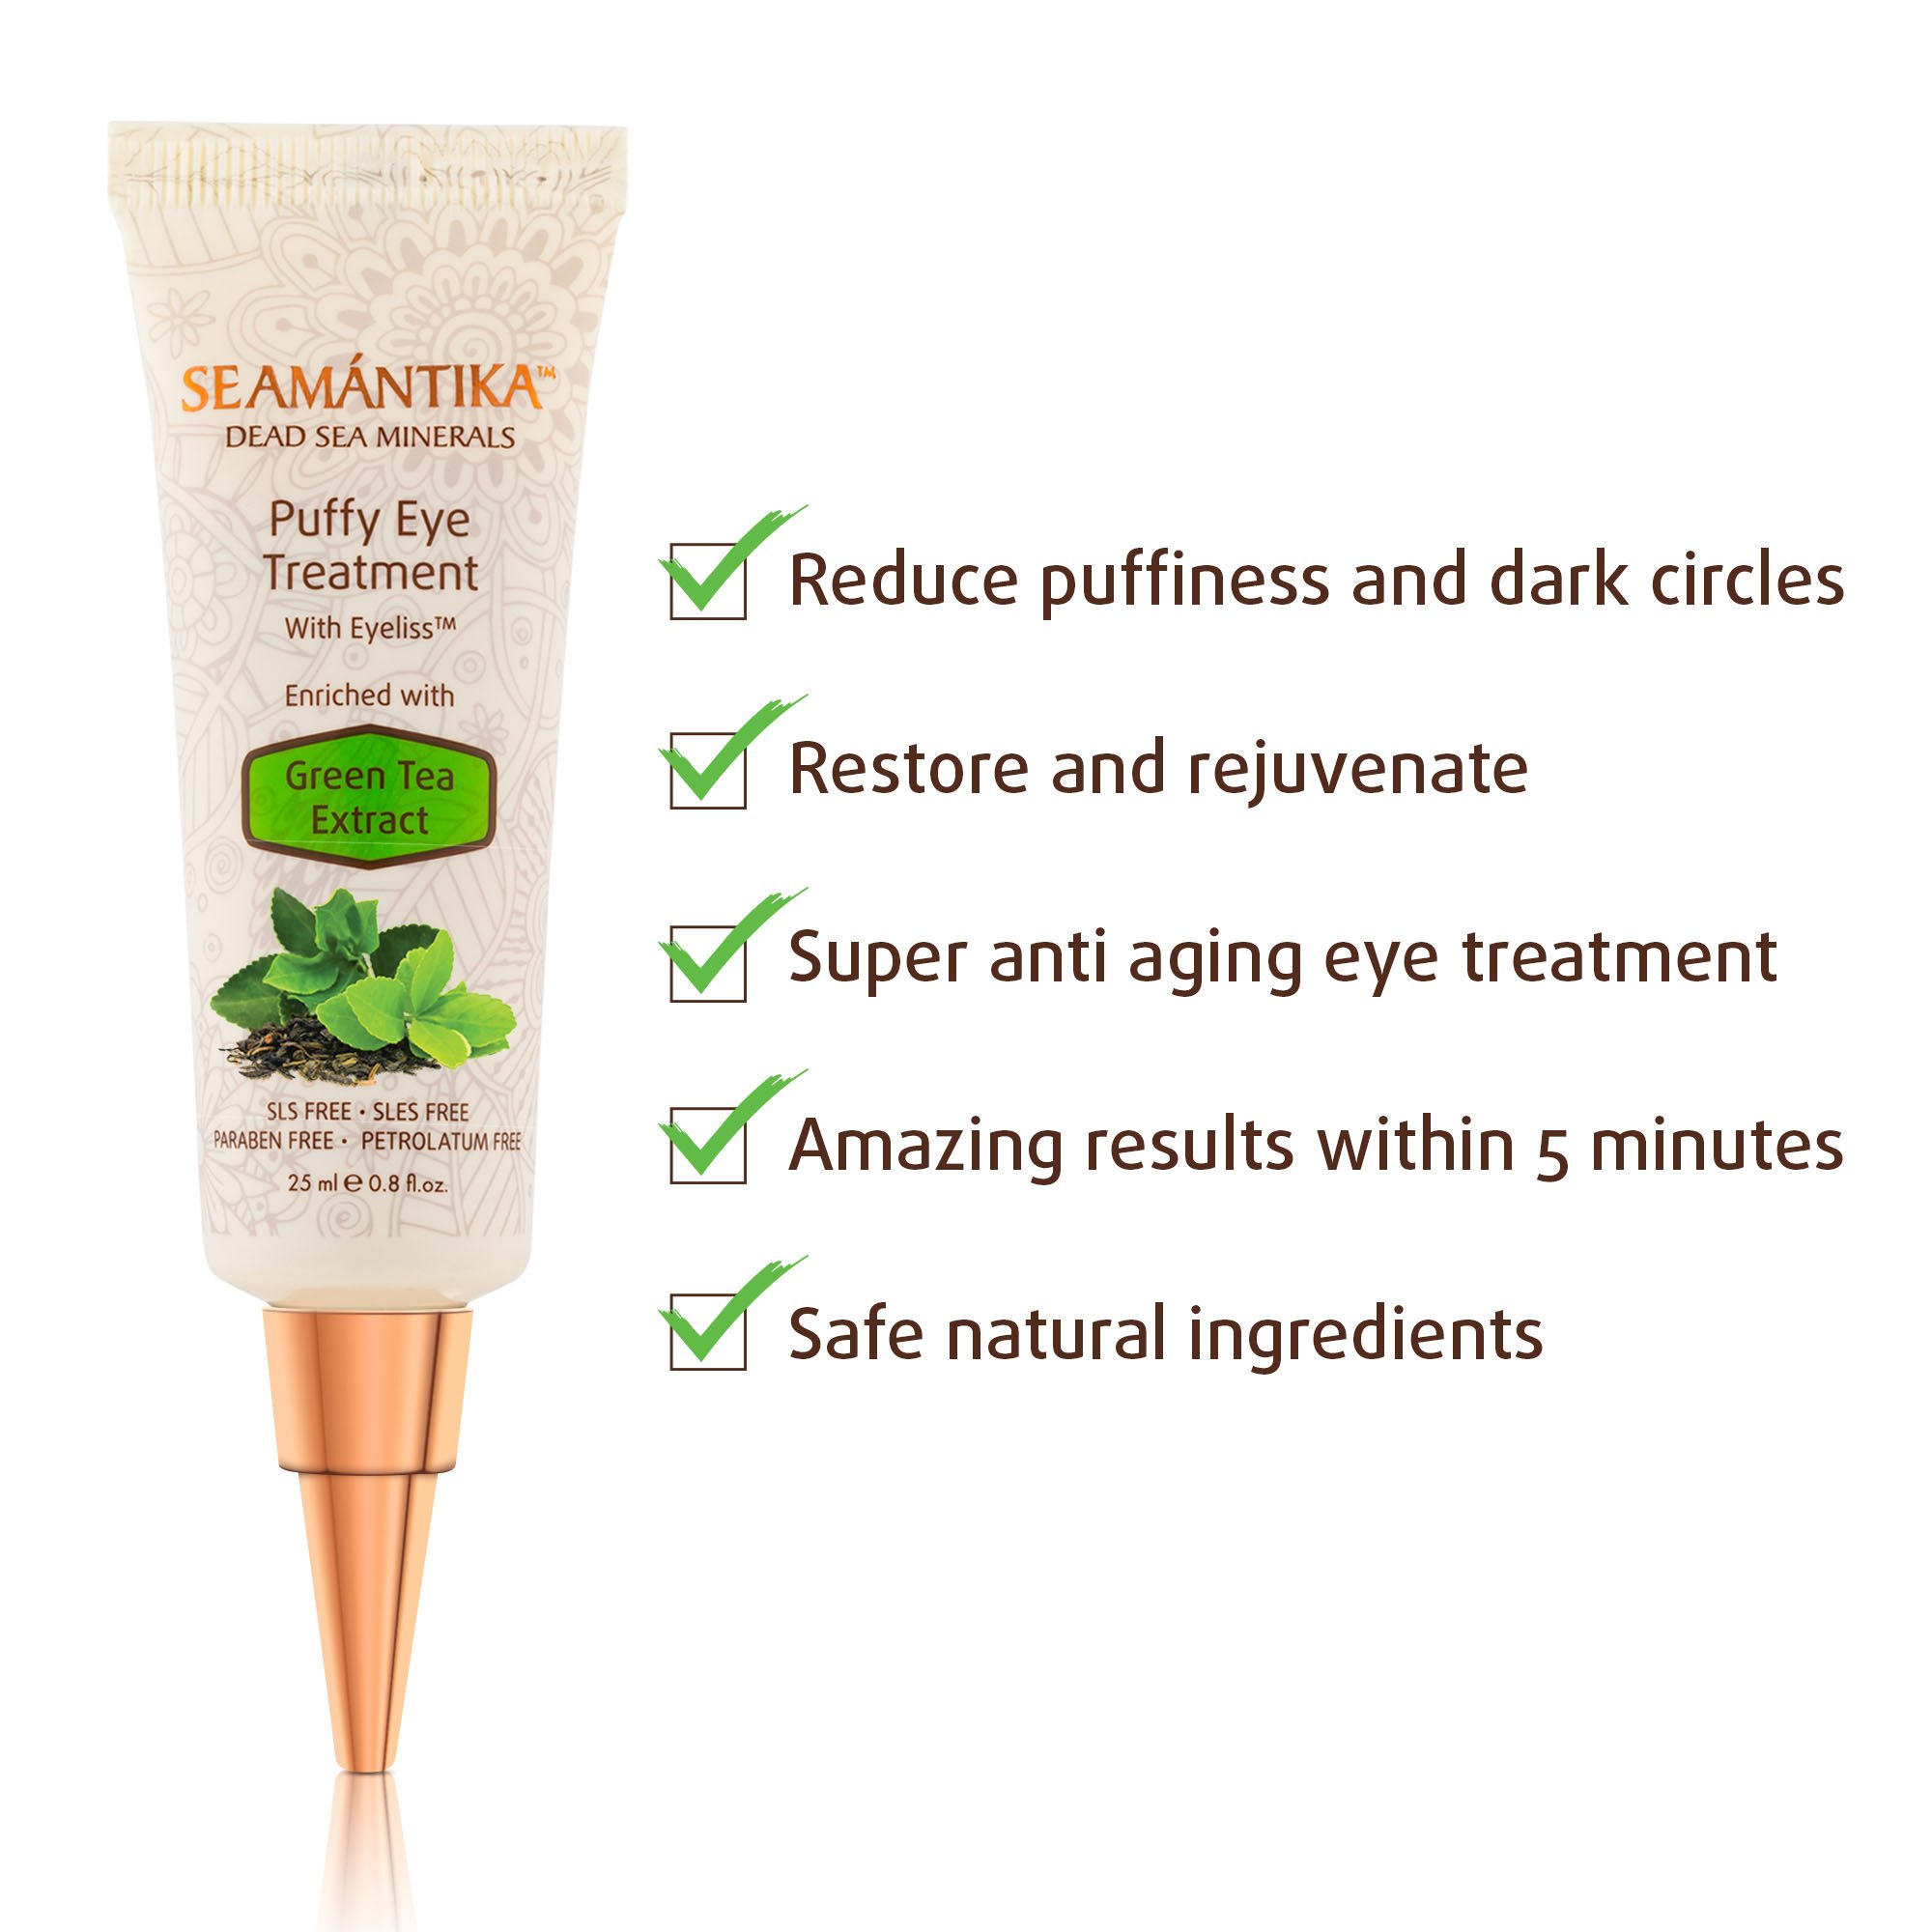 Puffy Eye Treatment Instant results – Naturally Eliminate Wrinkles, Puffiness, Dark Circle and Bags in Minutes – Hydrating Eye Cream w/Green Tea Extract, Dead Sea Minerals by SEAMANTIKA – .8 oz by SEAMANTIKA (Image #6)